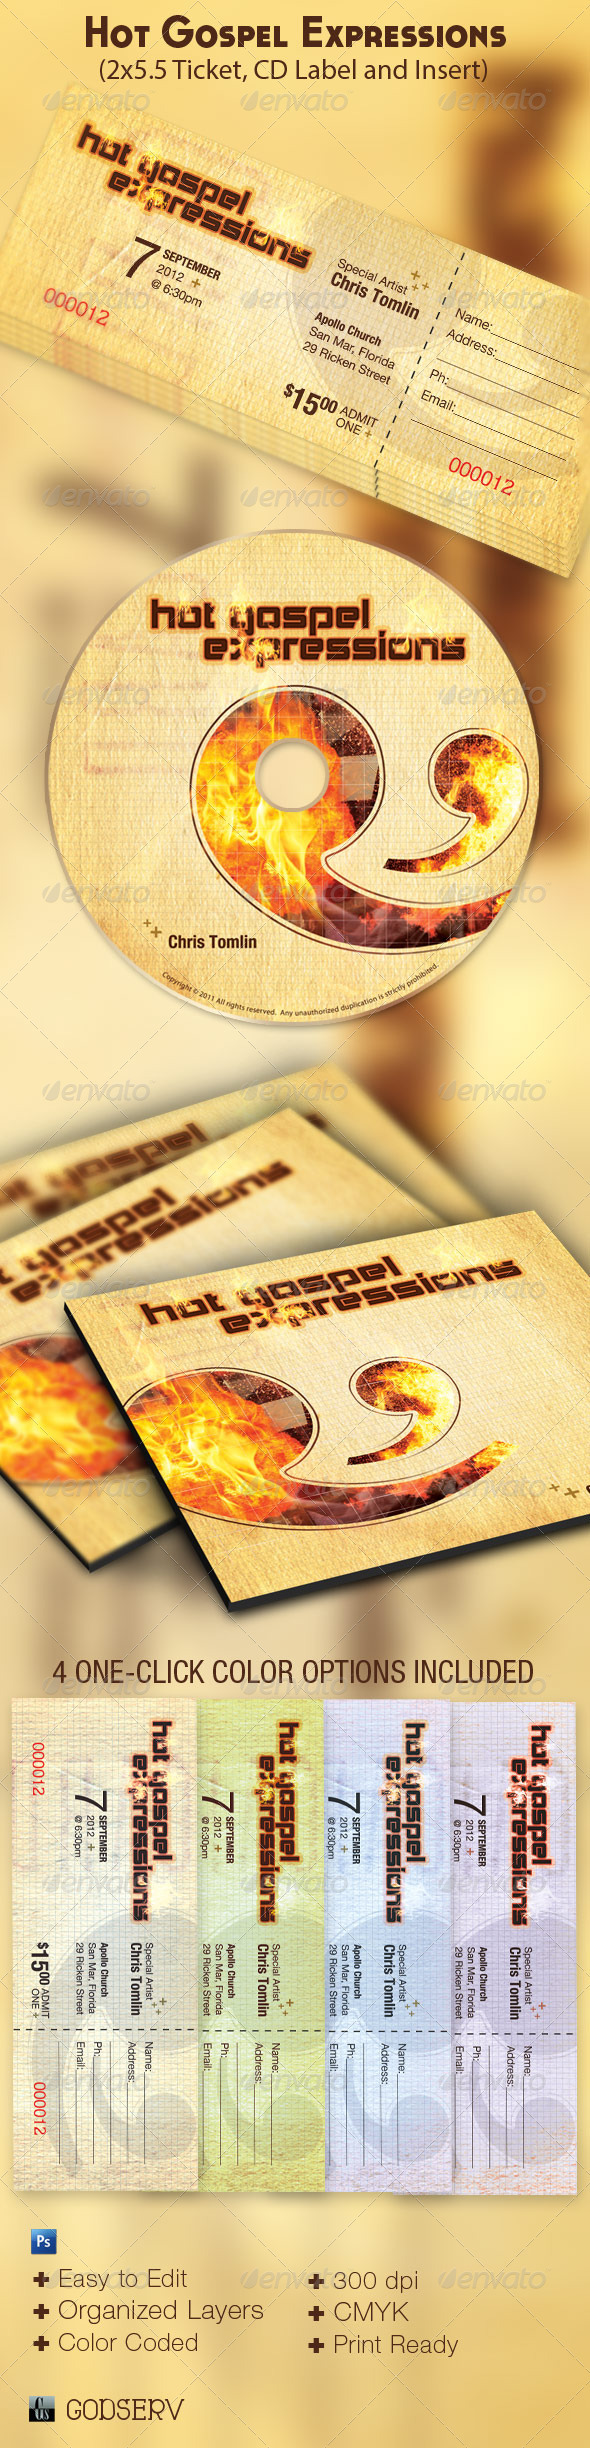 Hot Gospel Concert Ticket CD Template - Miscellaneous Print Templates